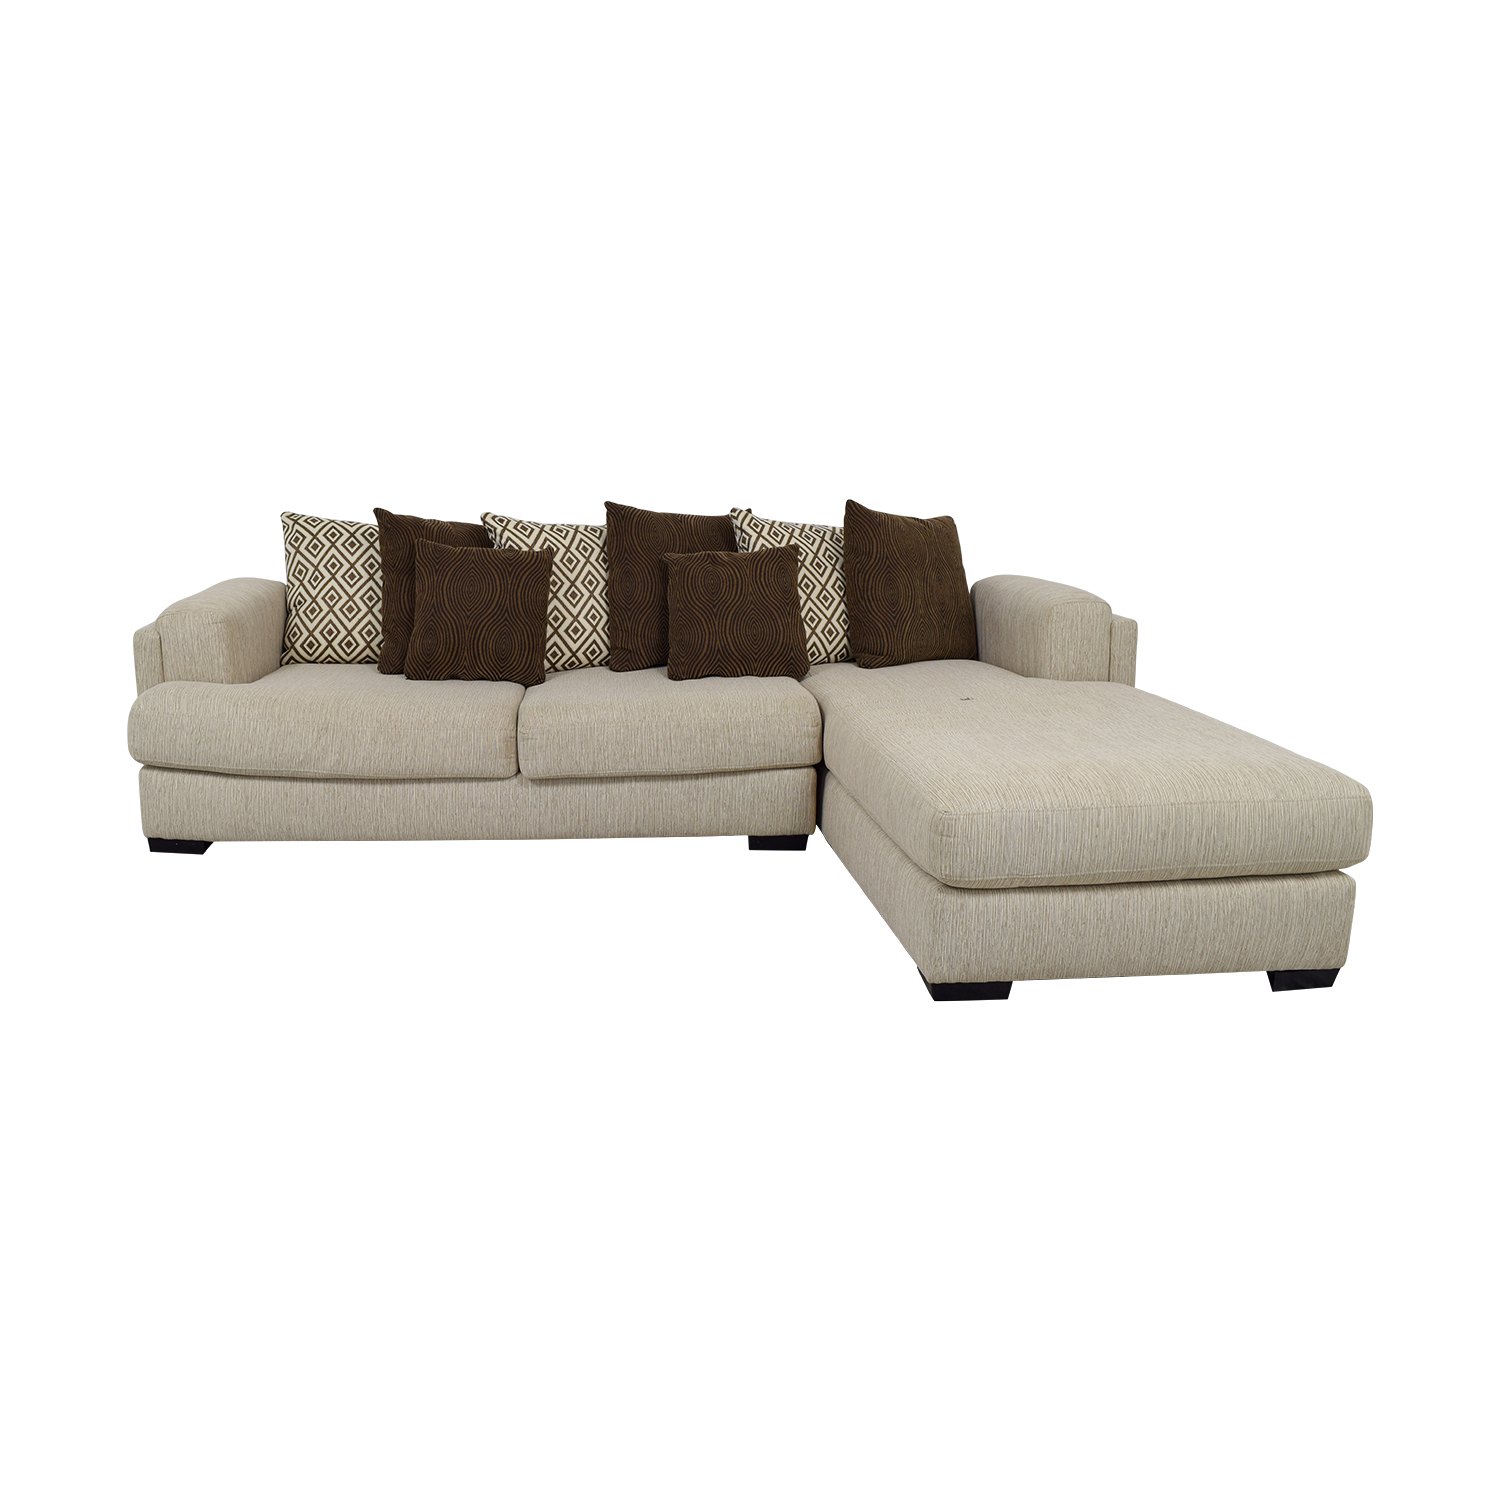 87 off raymour flanigan raymour flanigan urbanity beige chaise sectional sofas